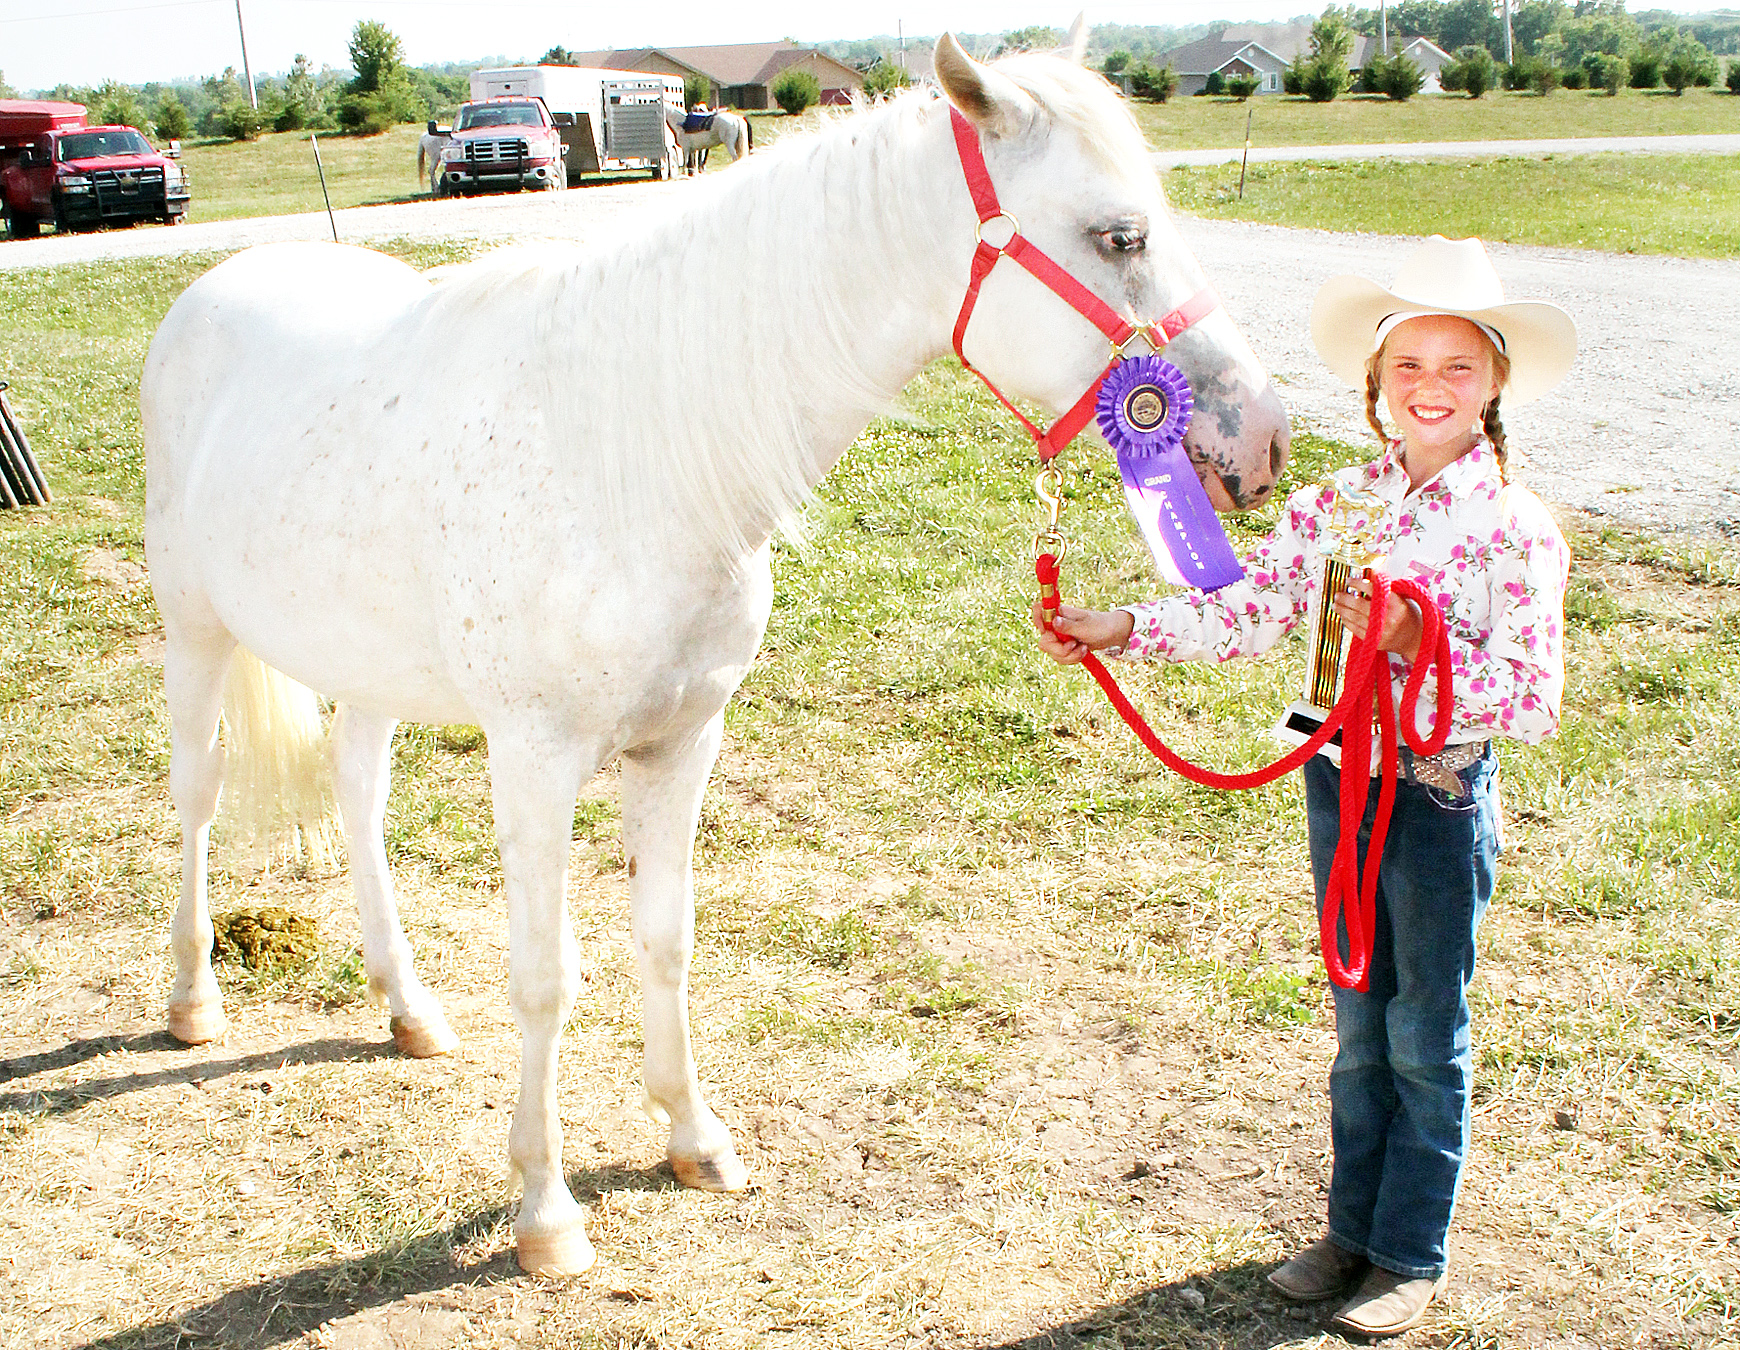 Miriam Halbleib of the Denison Builders won the showmanship, western pleasure and trail riding competitions for ages 7-9 at this year's horse show.